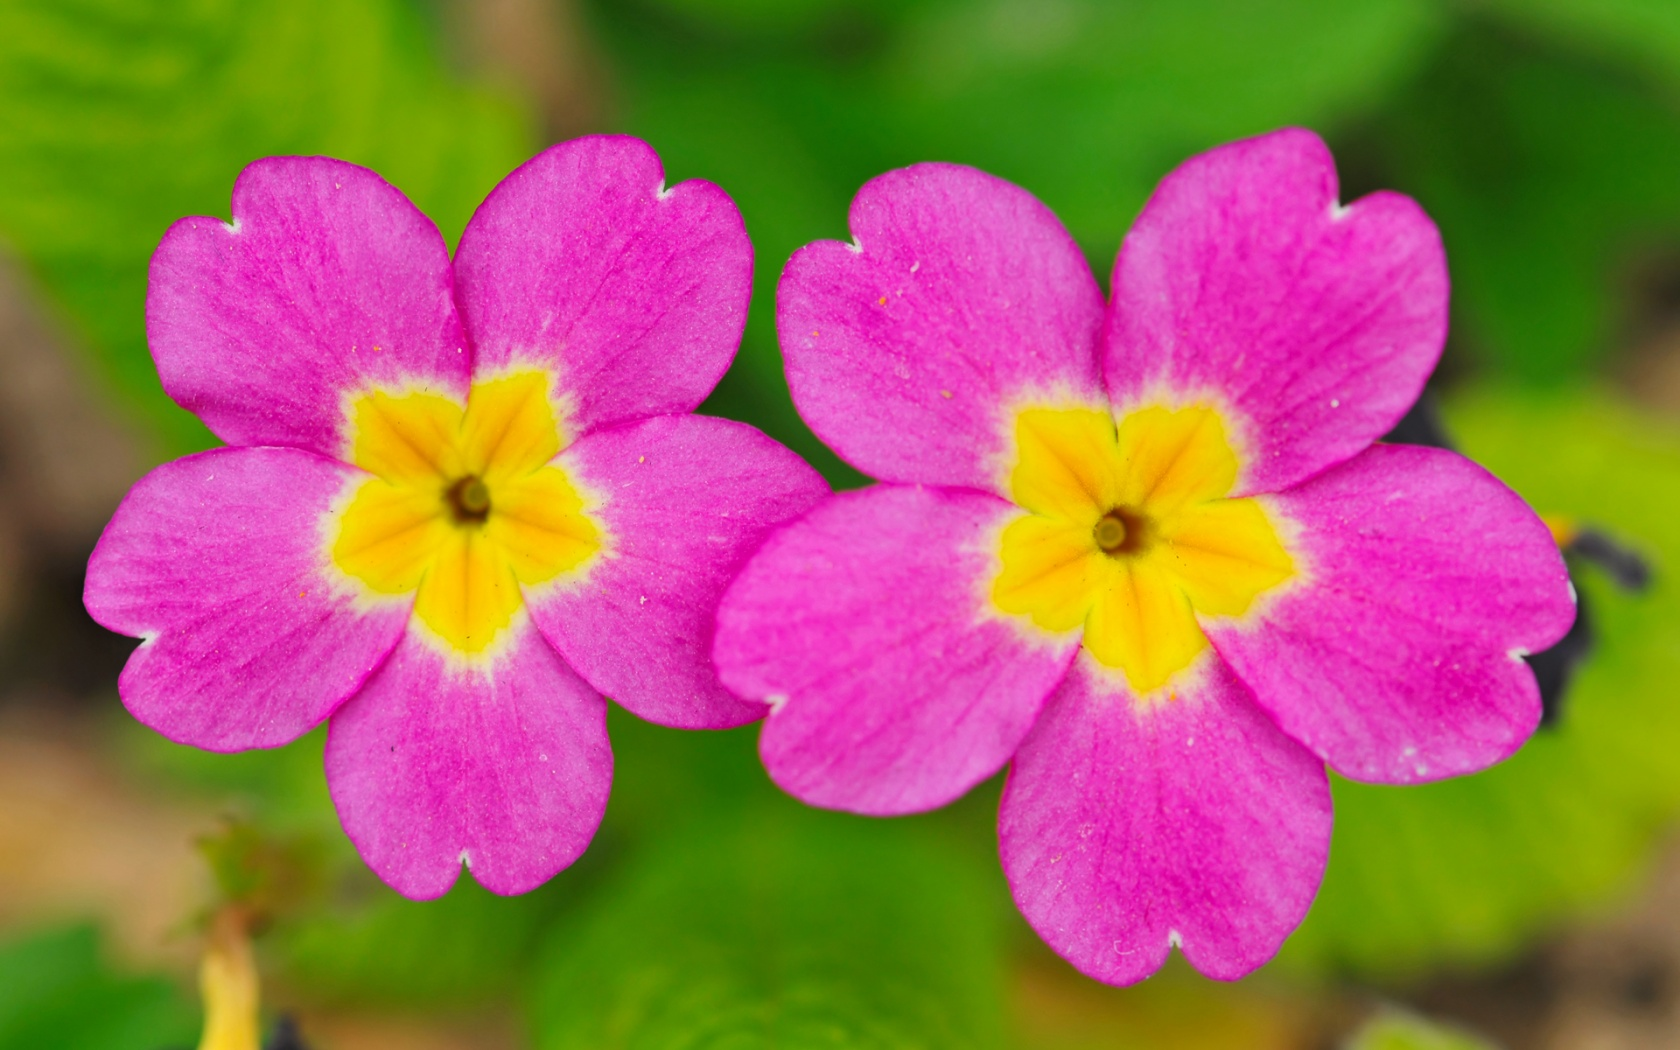 two small cute flowers 1680x1050 Wallpaper 1680x1050